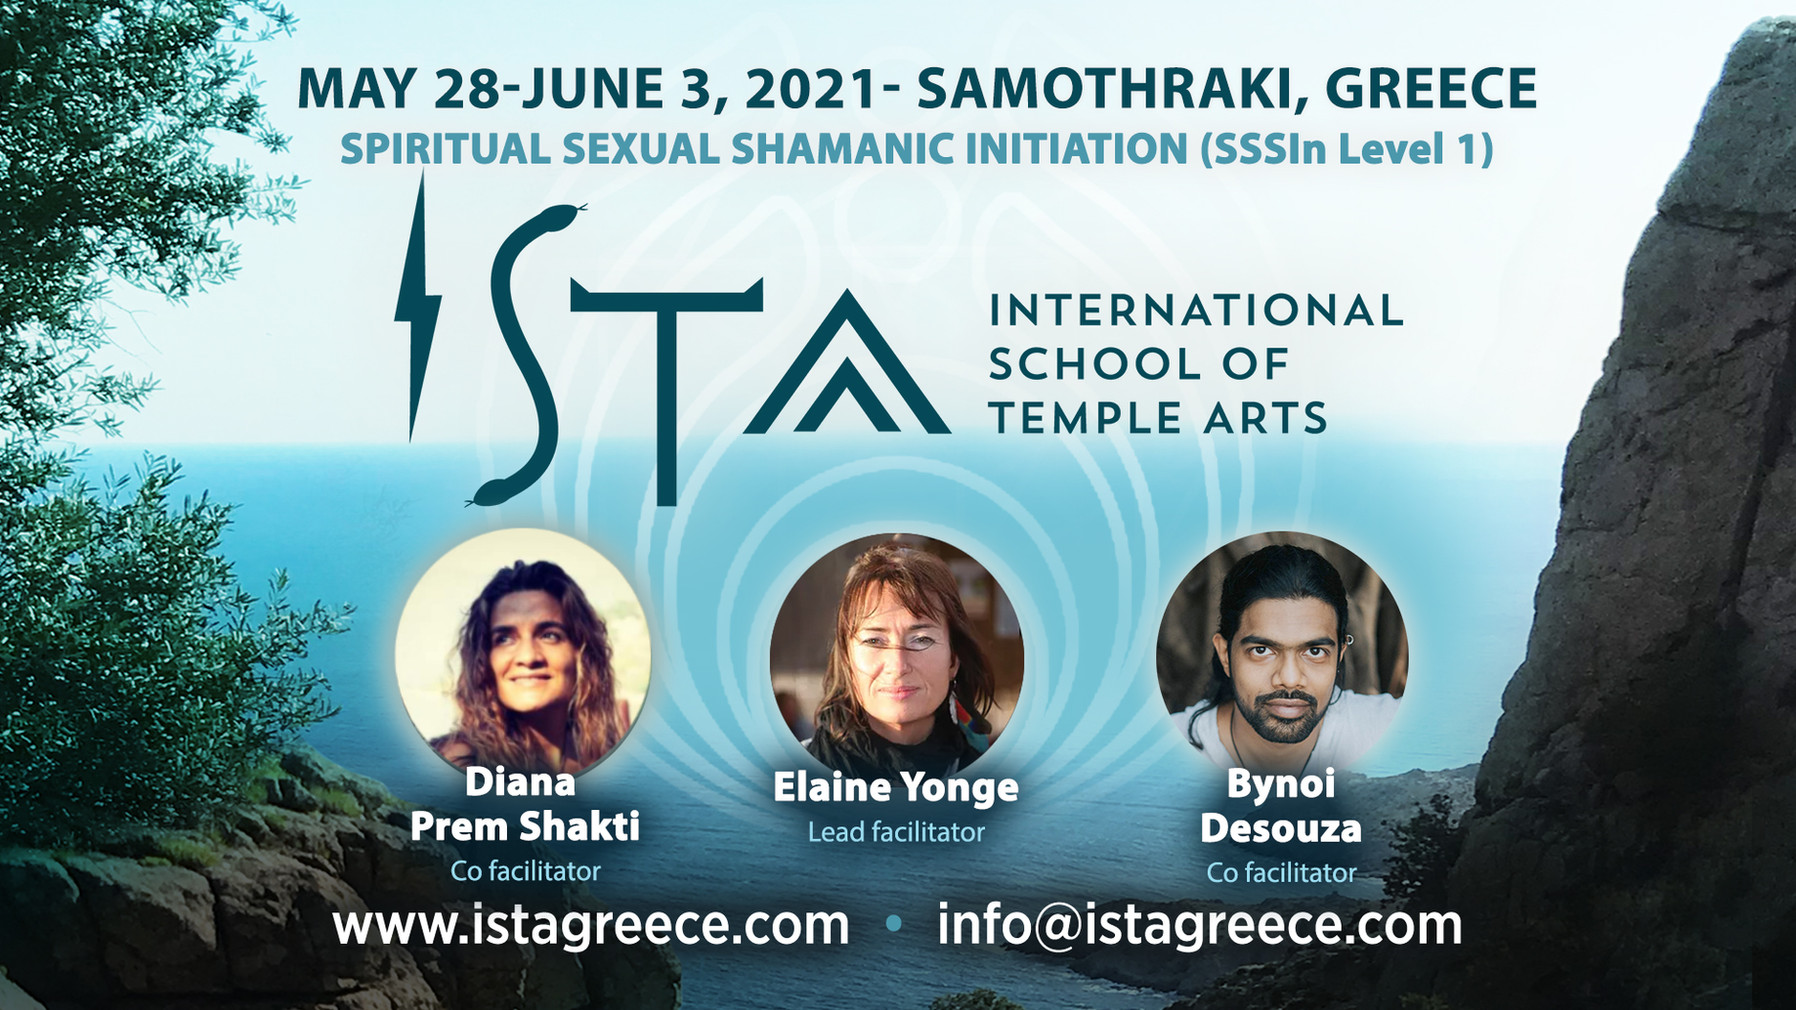 ISTA-GREECE-MAY-JUNE-2021.jpeg